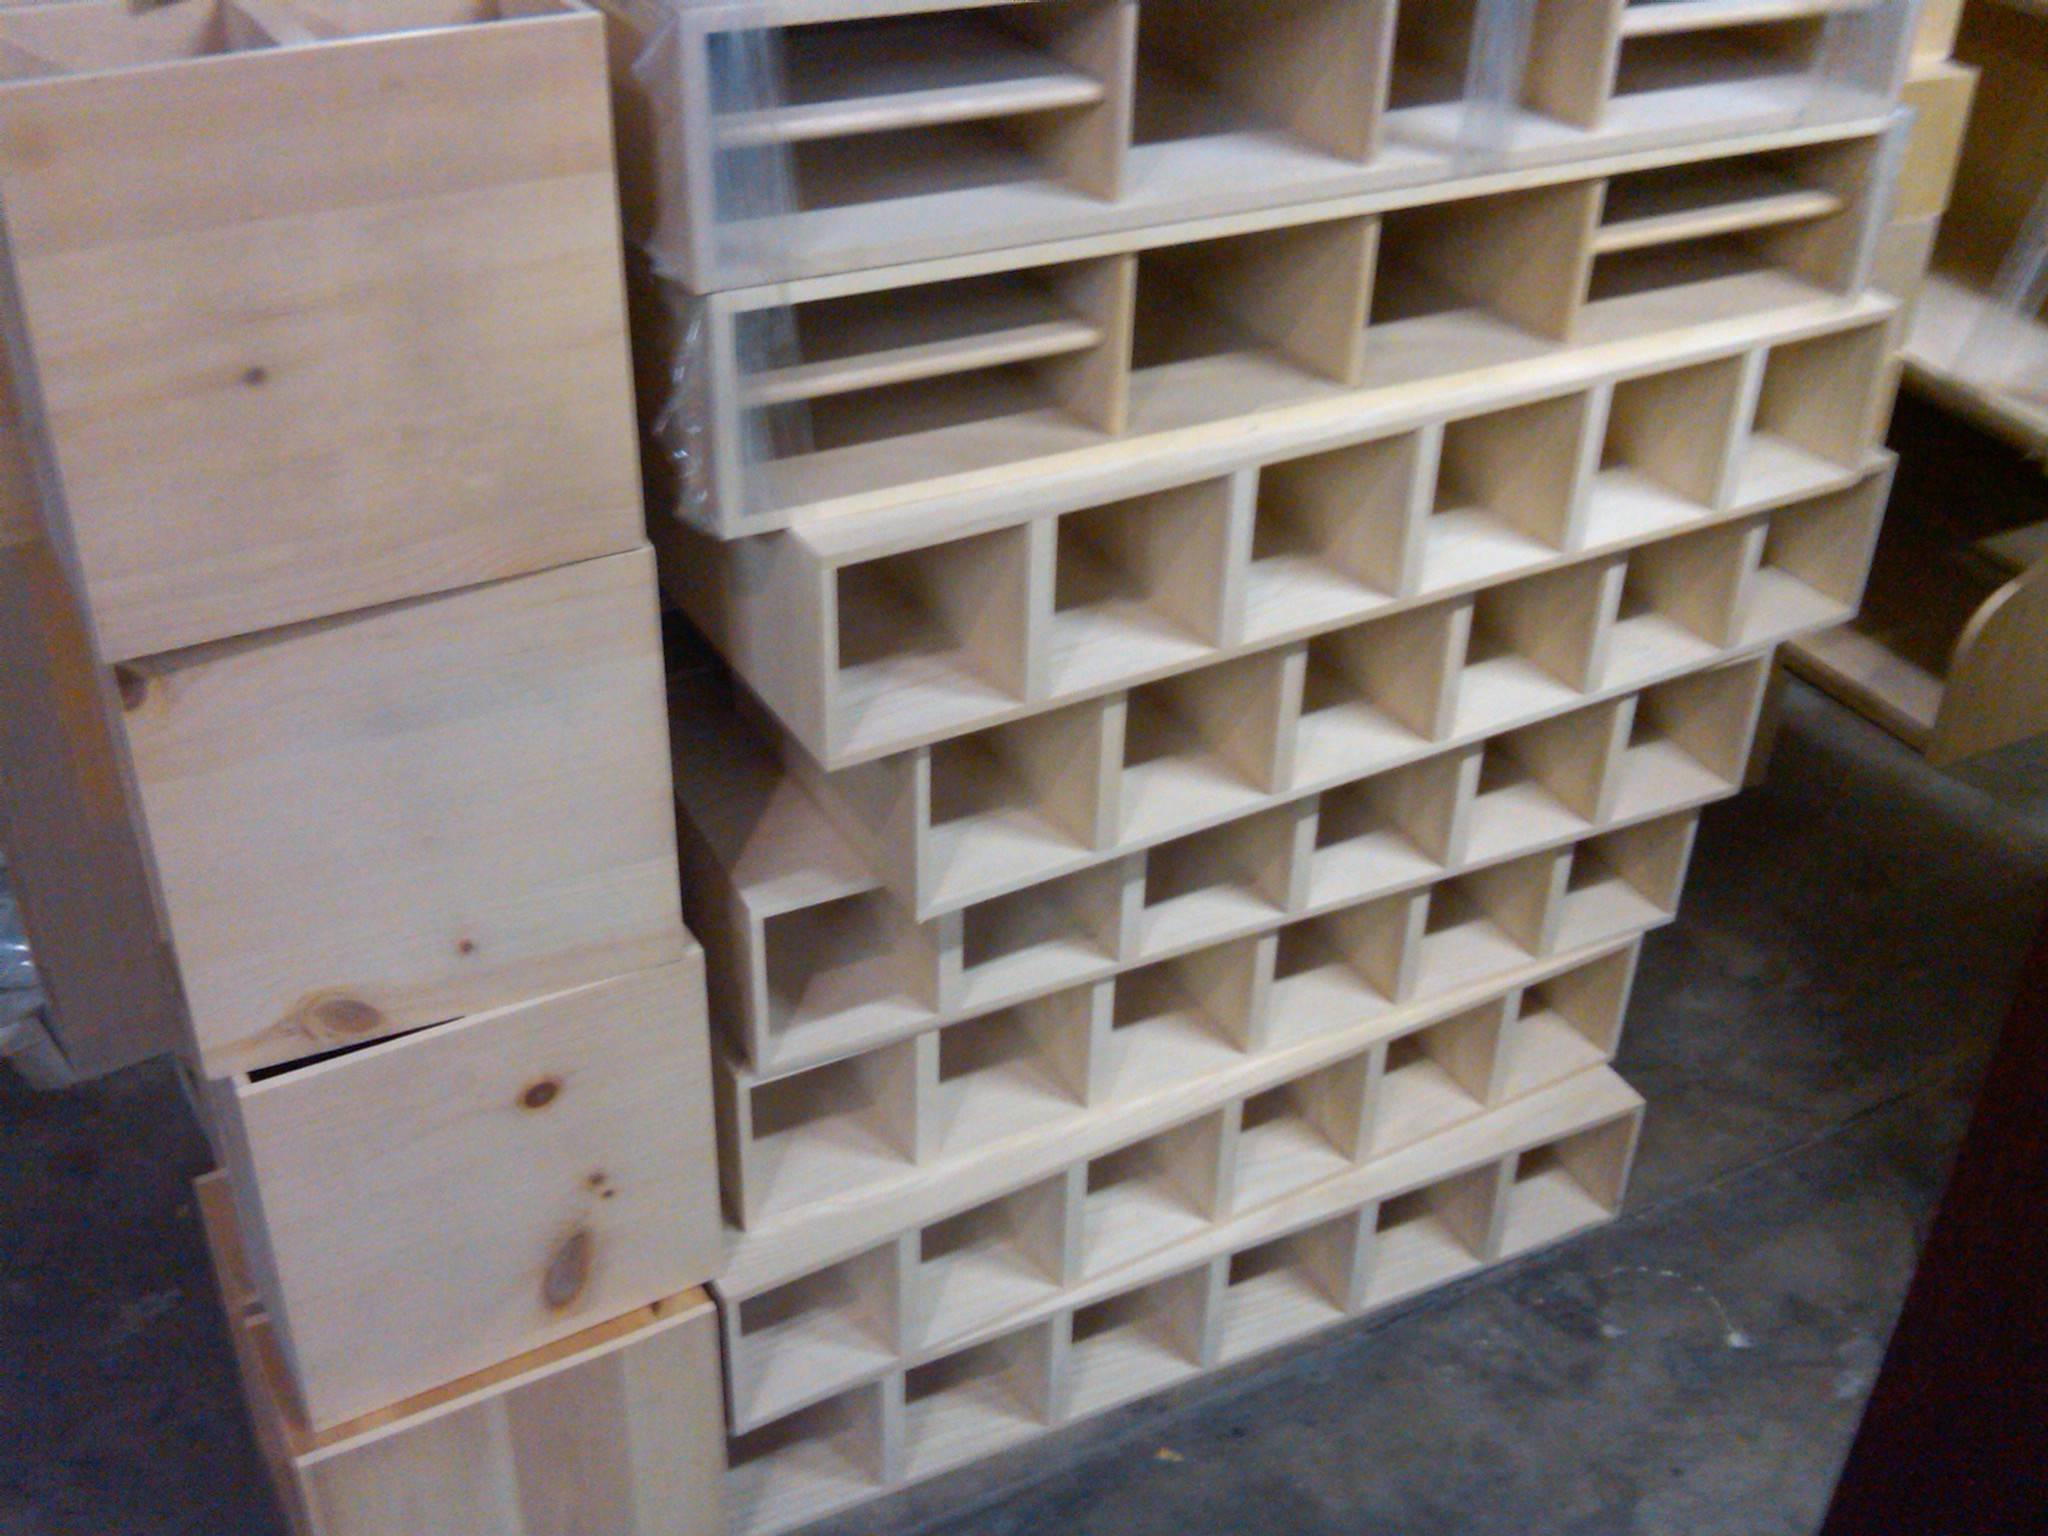 Creative Storage Solutions at Buds Warehouse  Buds